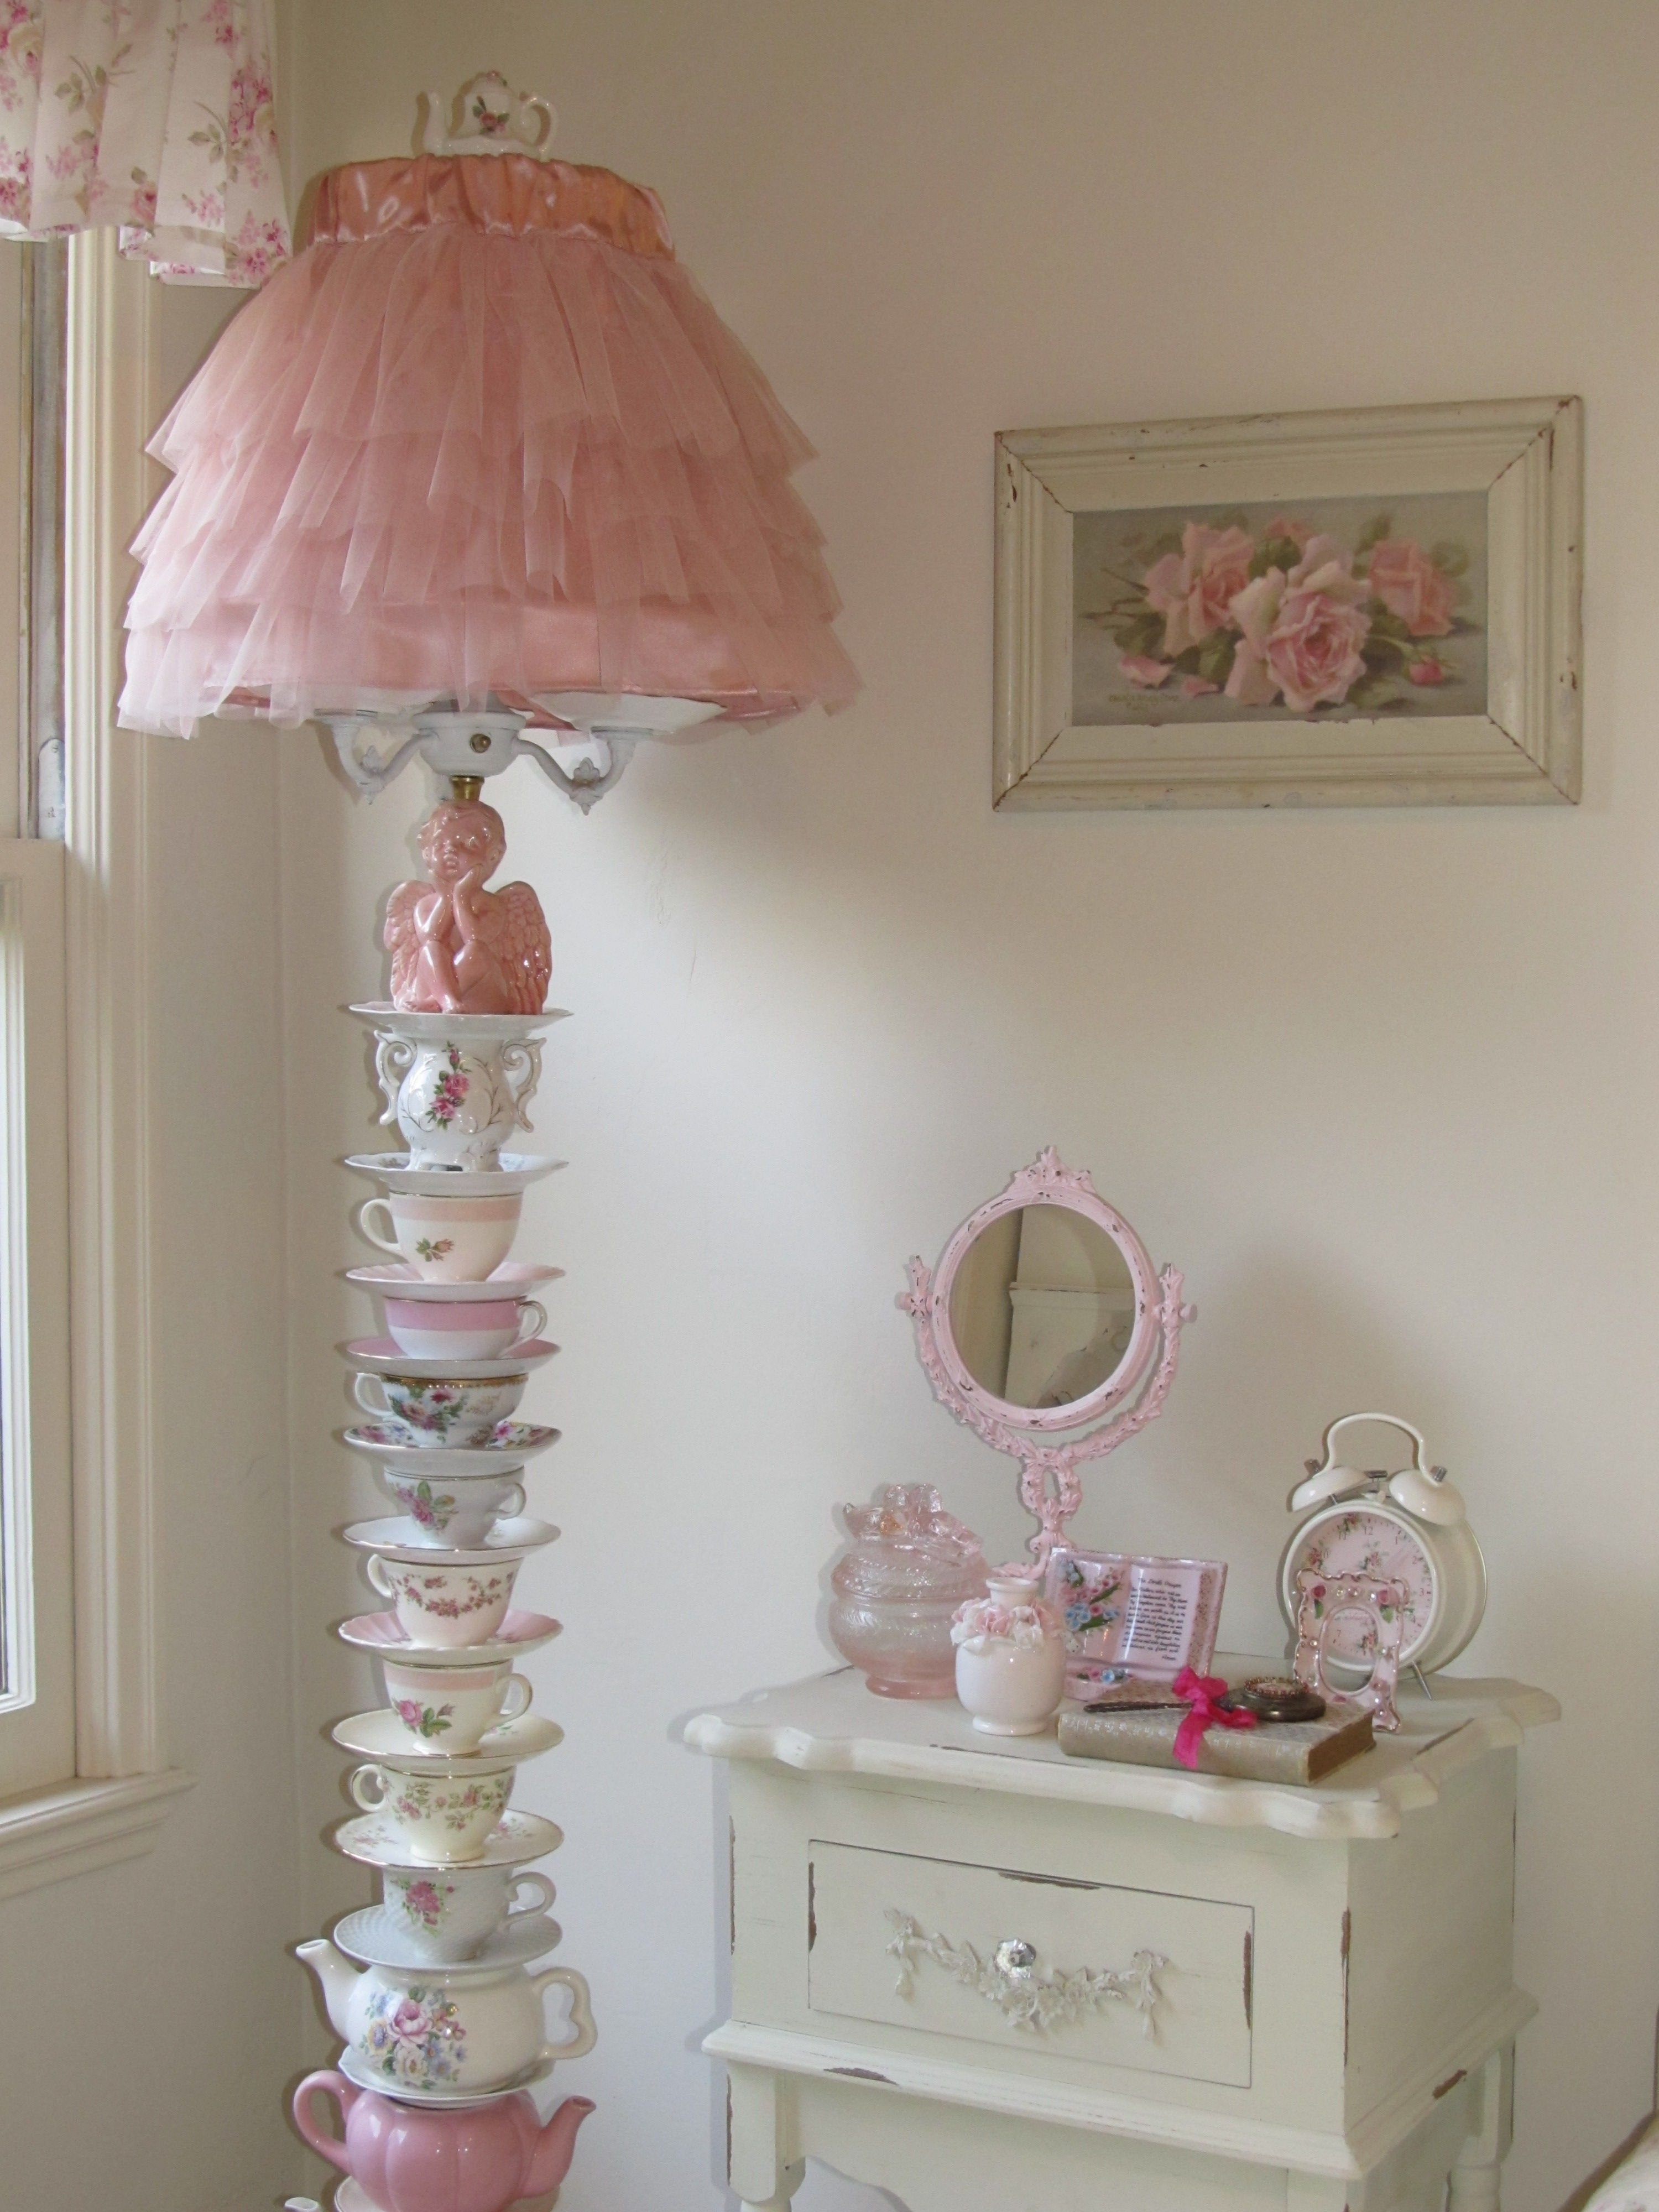 Delightful Teapot And Teacup Lamp! Amazing!